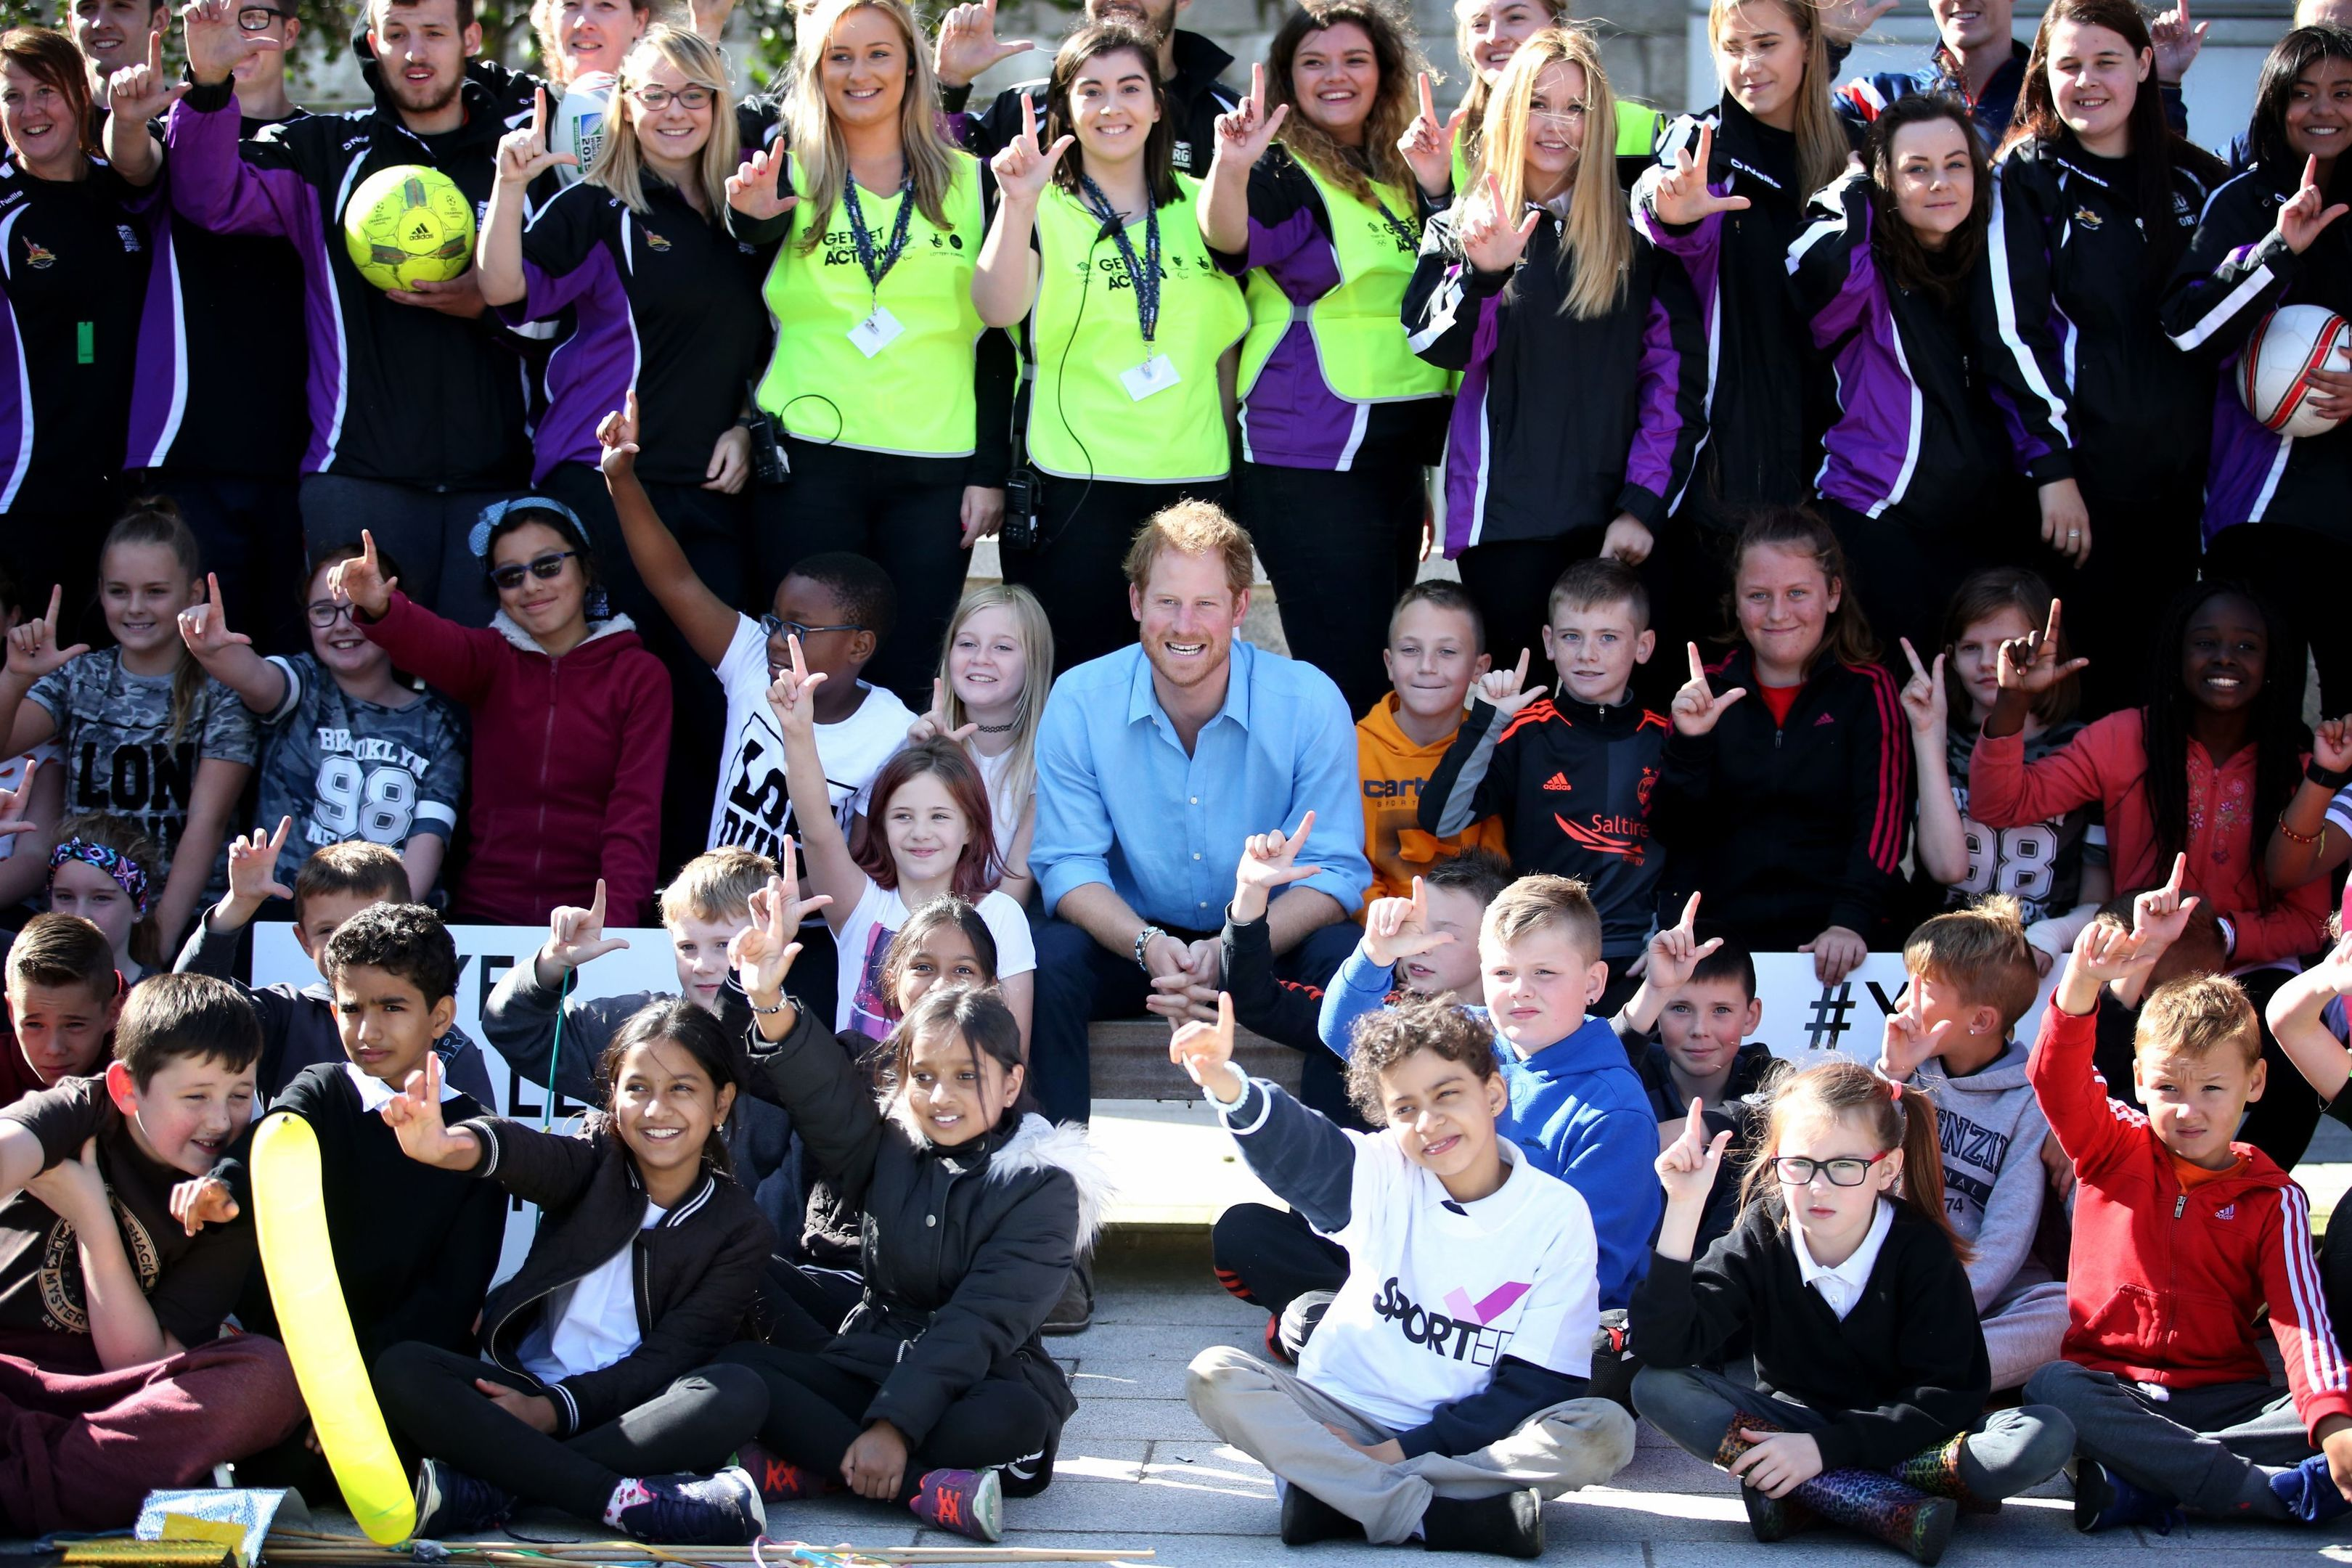 Prince Harry with volunteers from the Streetsport charity and pupils from Kaimhill School during a visit to Robert Gordon University in Aberdeen